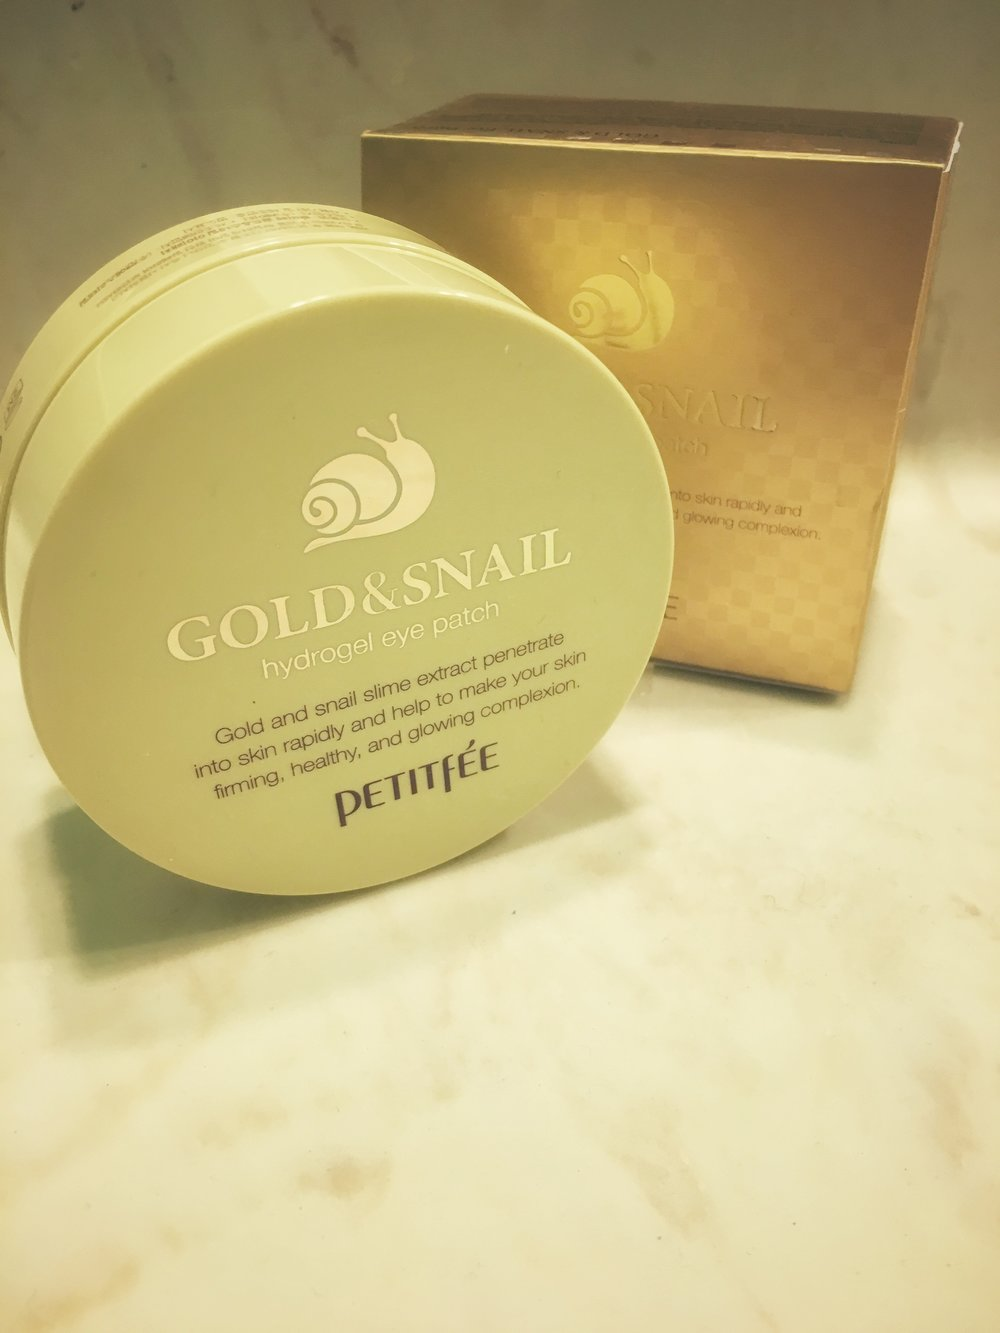 Snail Slime Mask Review Petitfee Gold and Snail Hydrogel Eye Patch Packaging.jpg